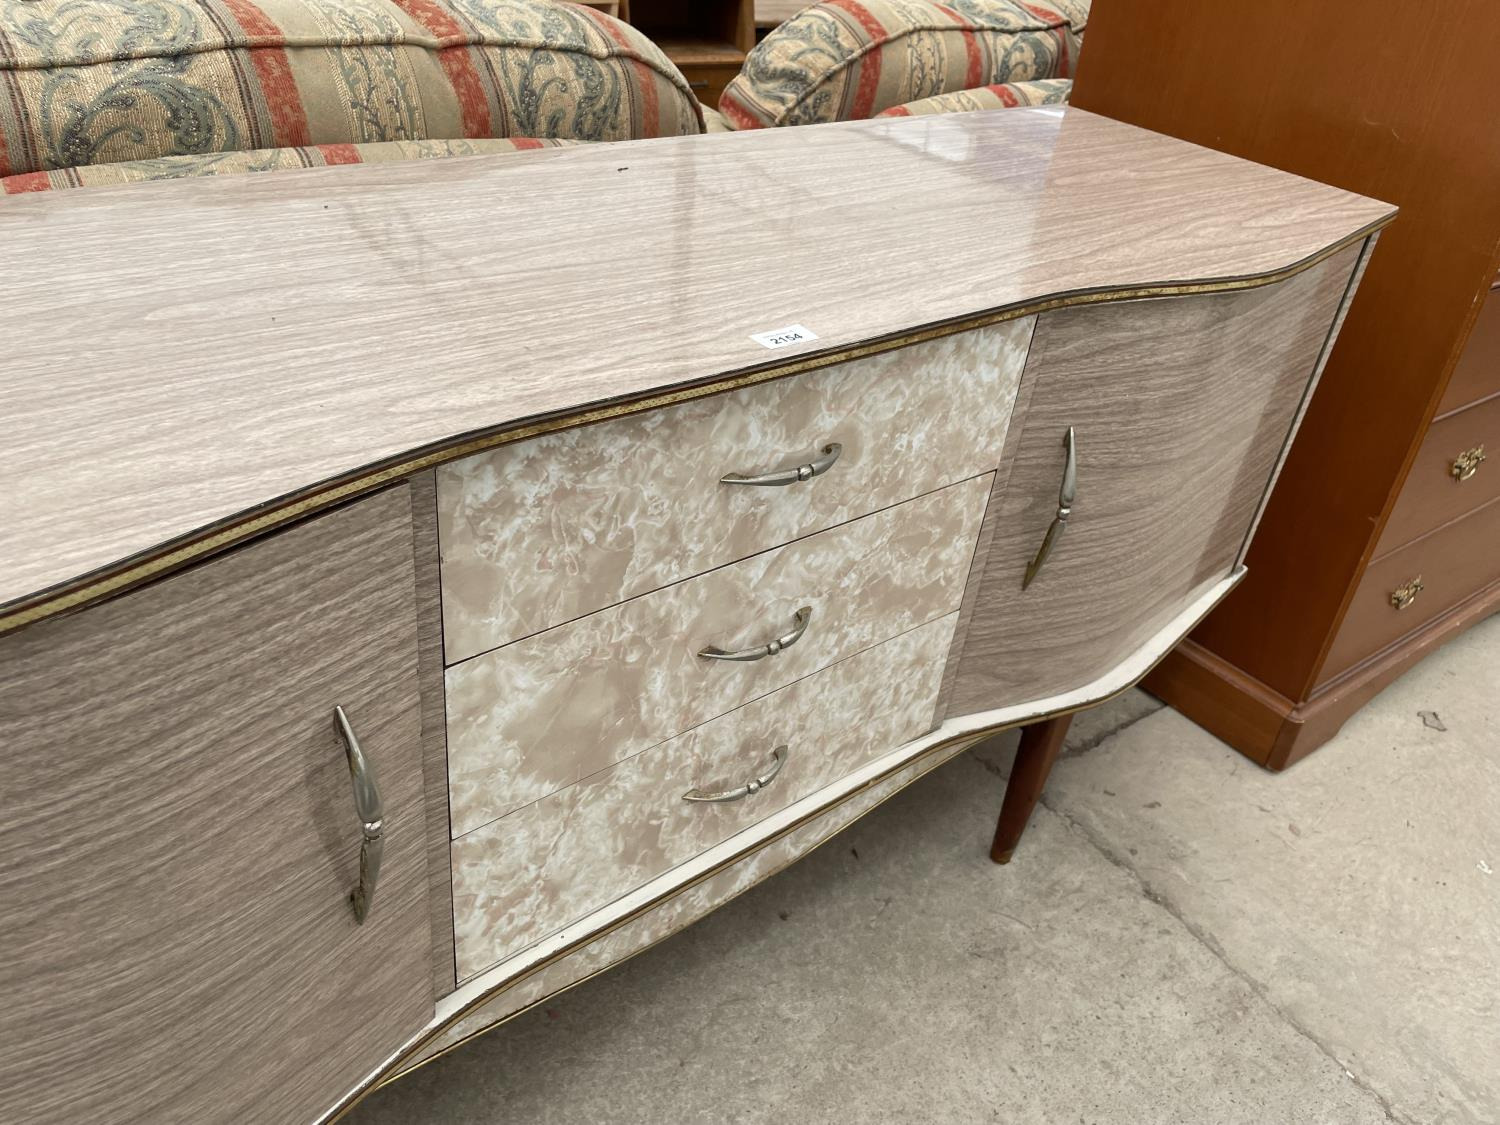 """A MID 20TH CENTURY CREAMY WANUT EFFECT SIDEBOARD, 60"""" WIDE - Image 4 of 5"""